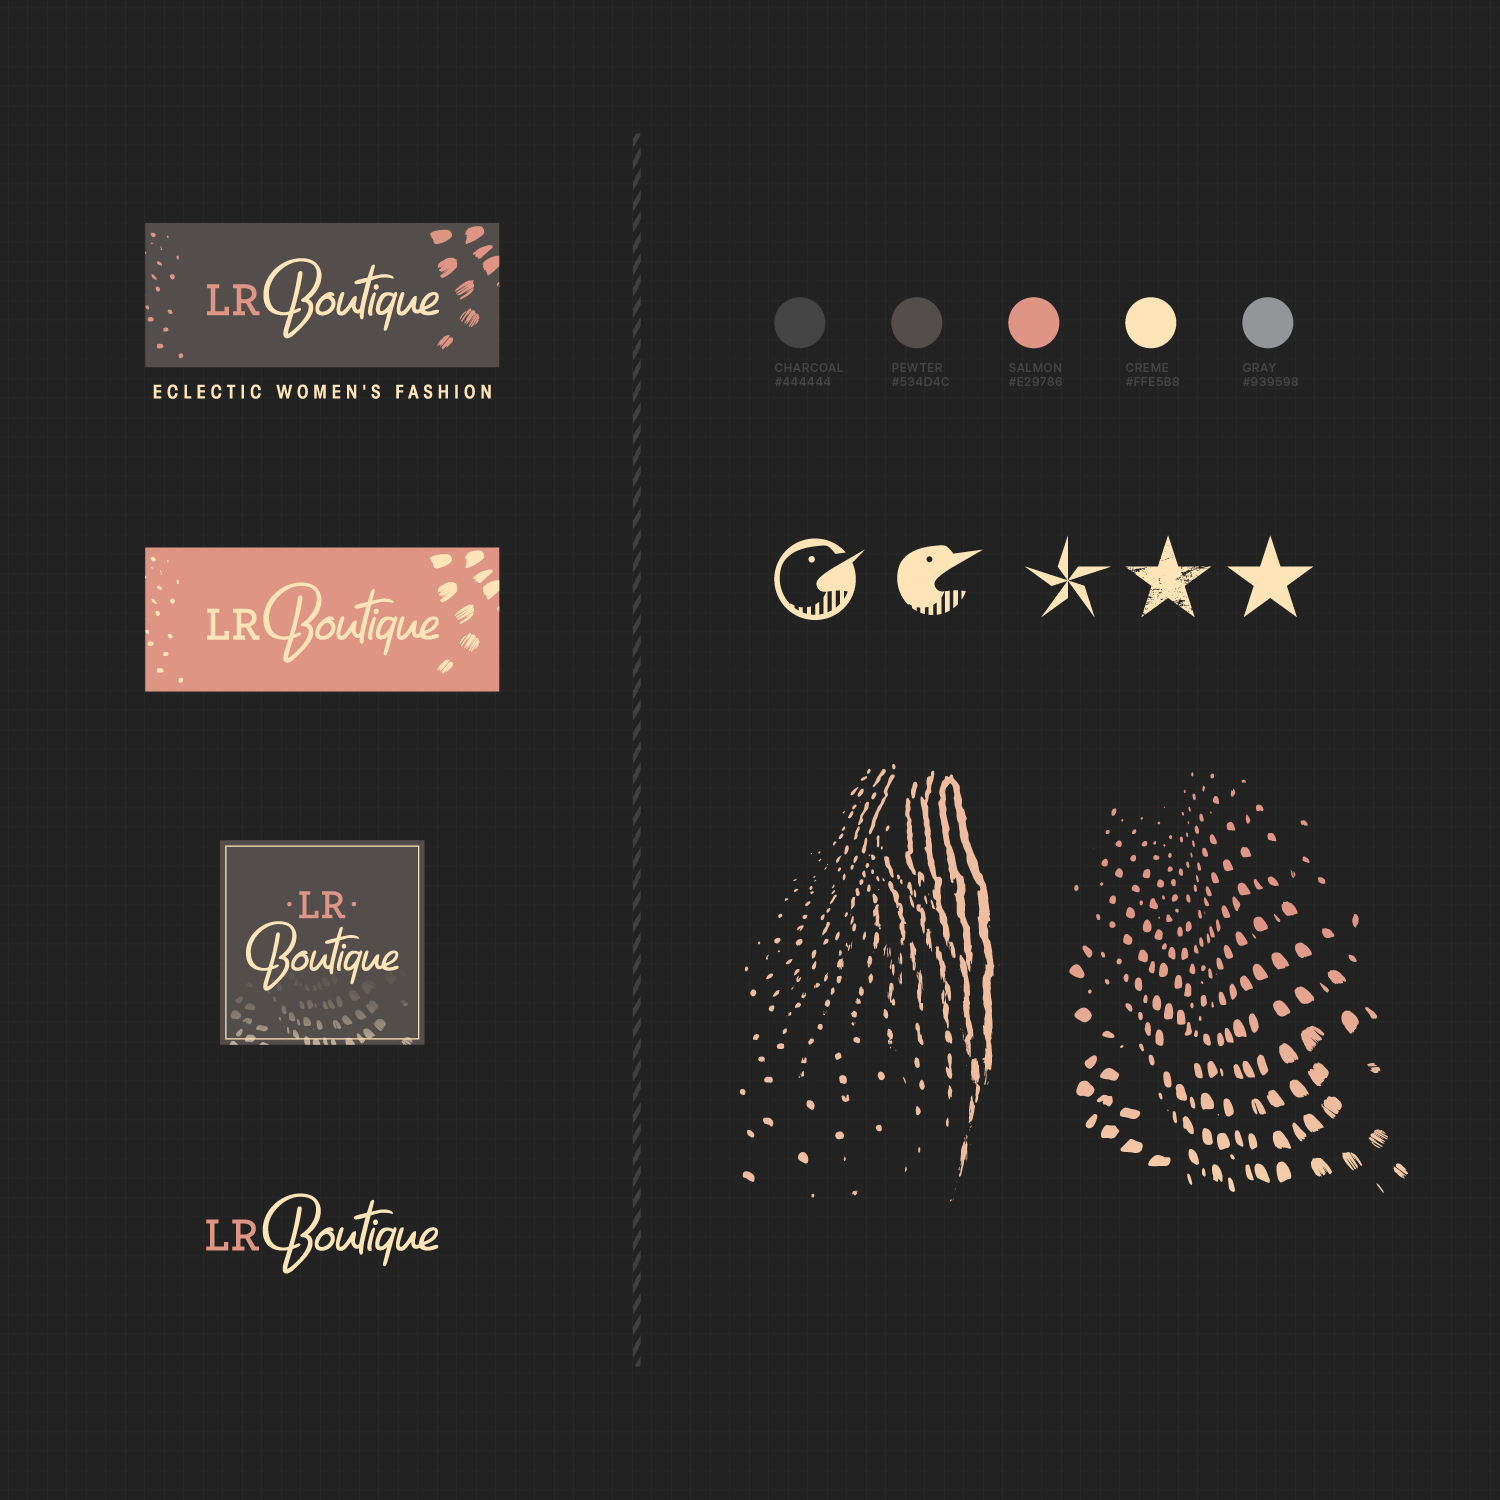 LR Boutique logo variations and accompanying artwork